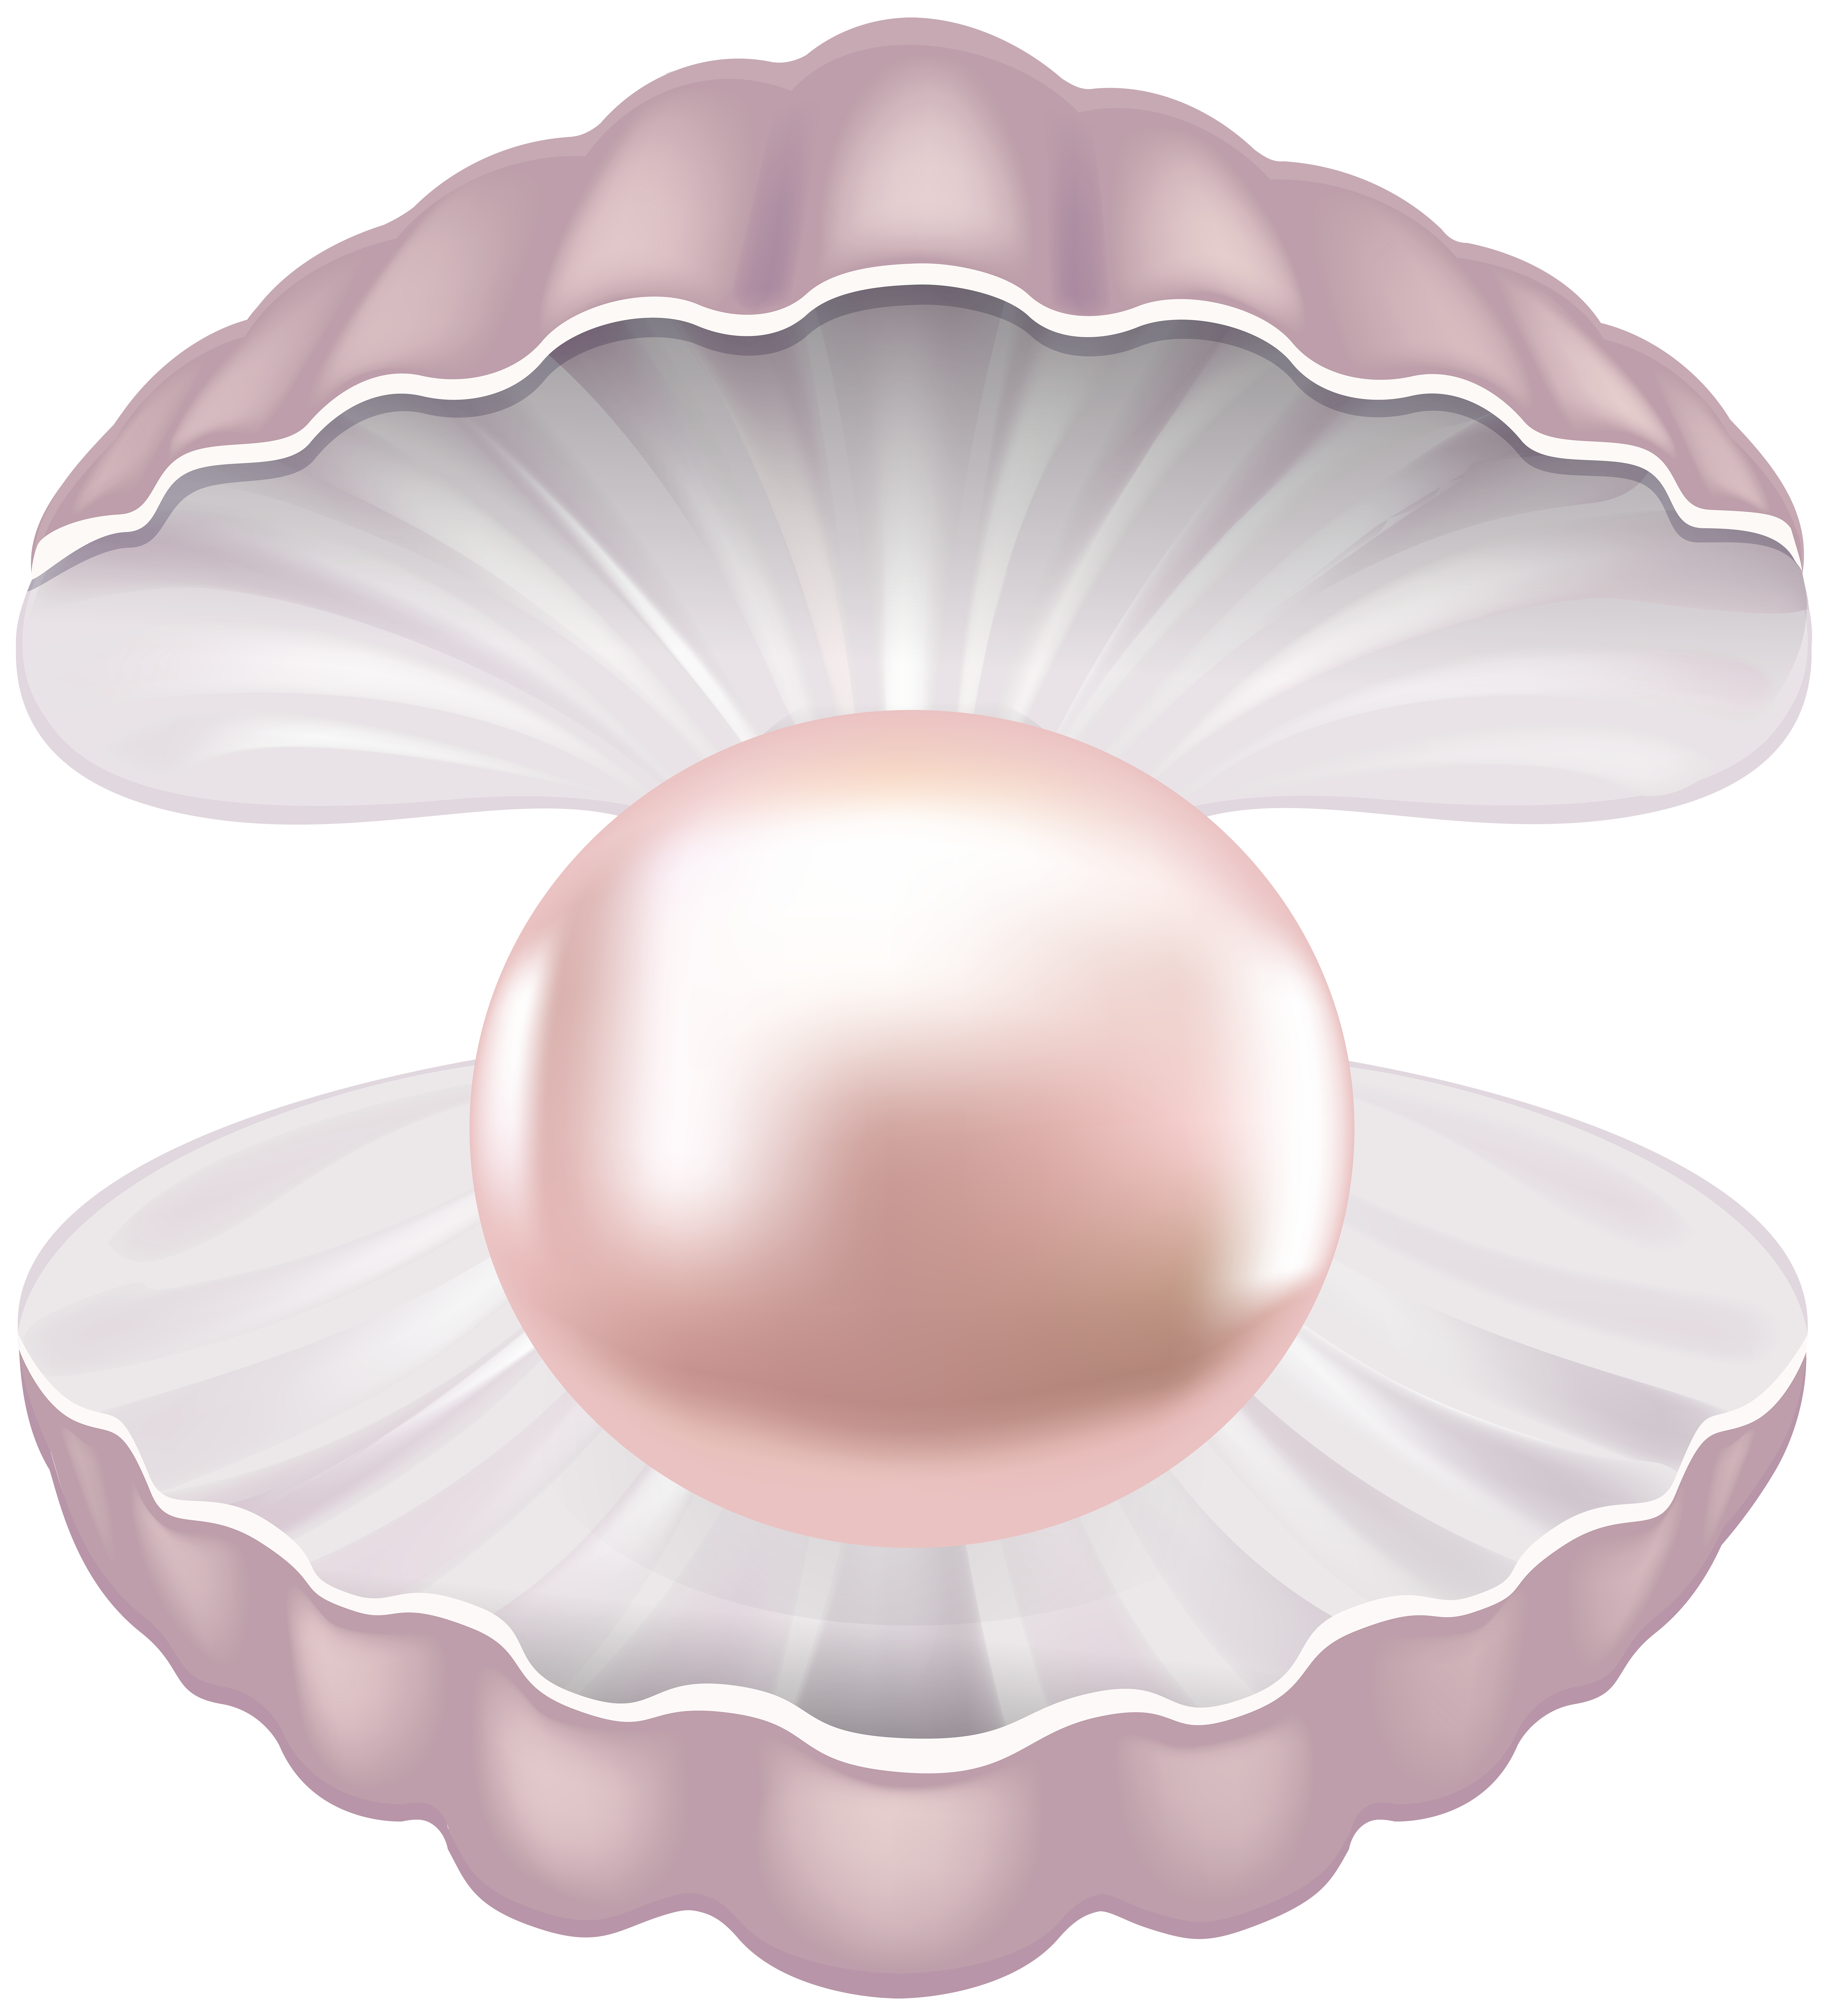 Shell clipart colorful. Pearl transparent png clip